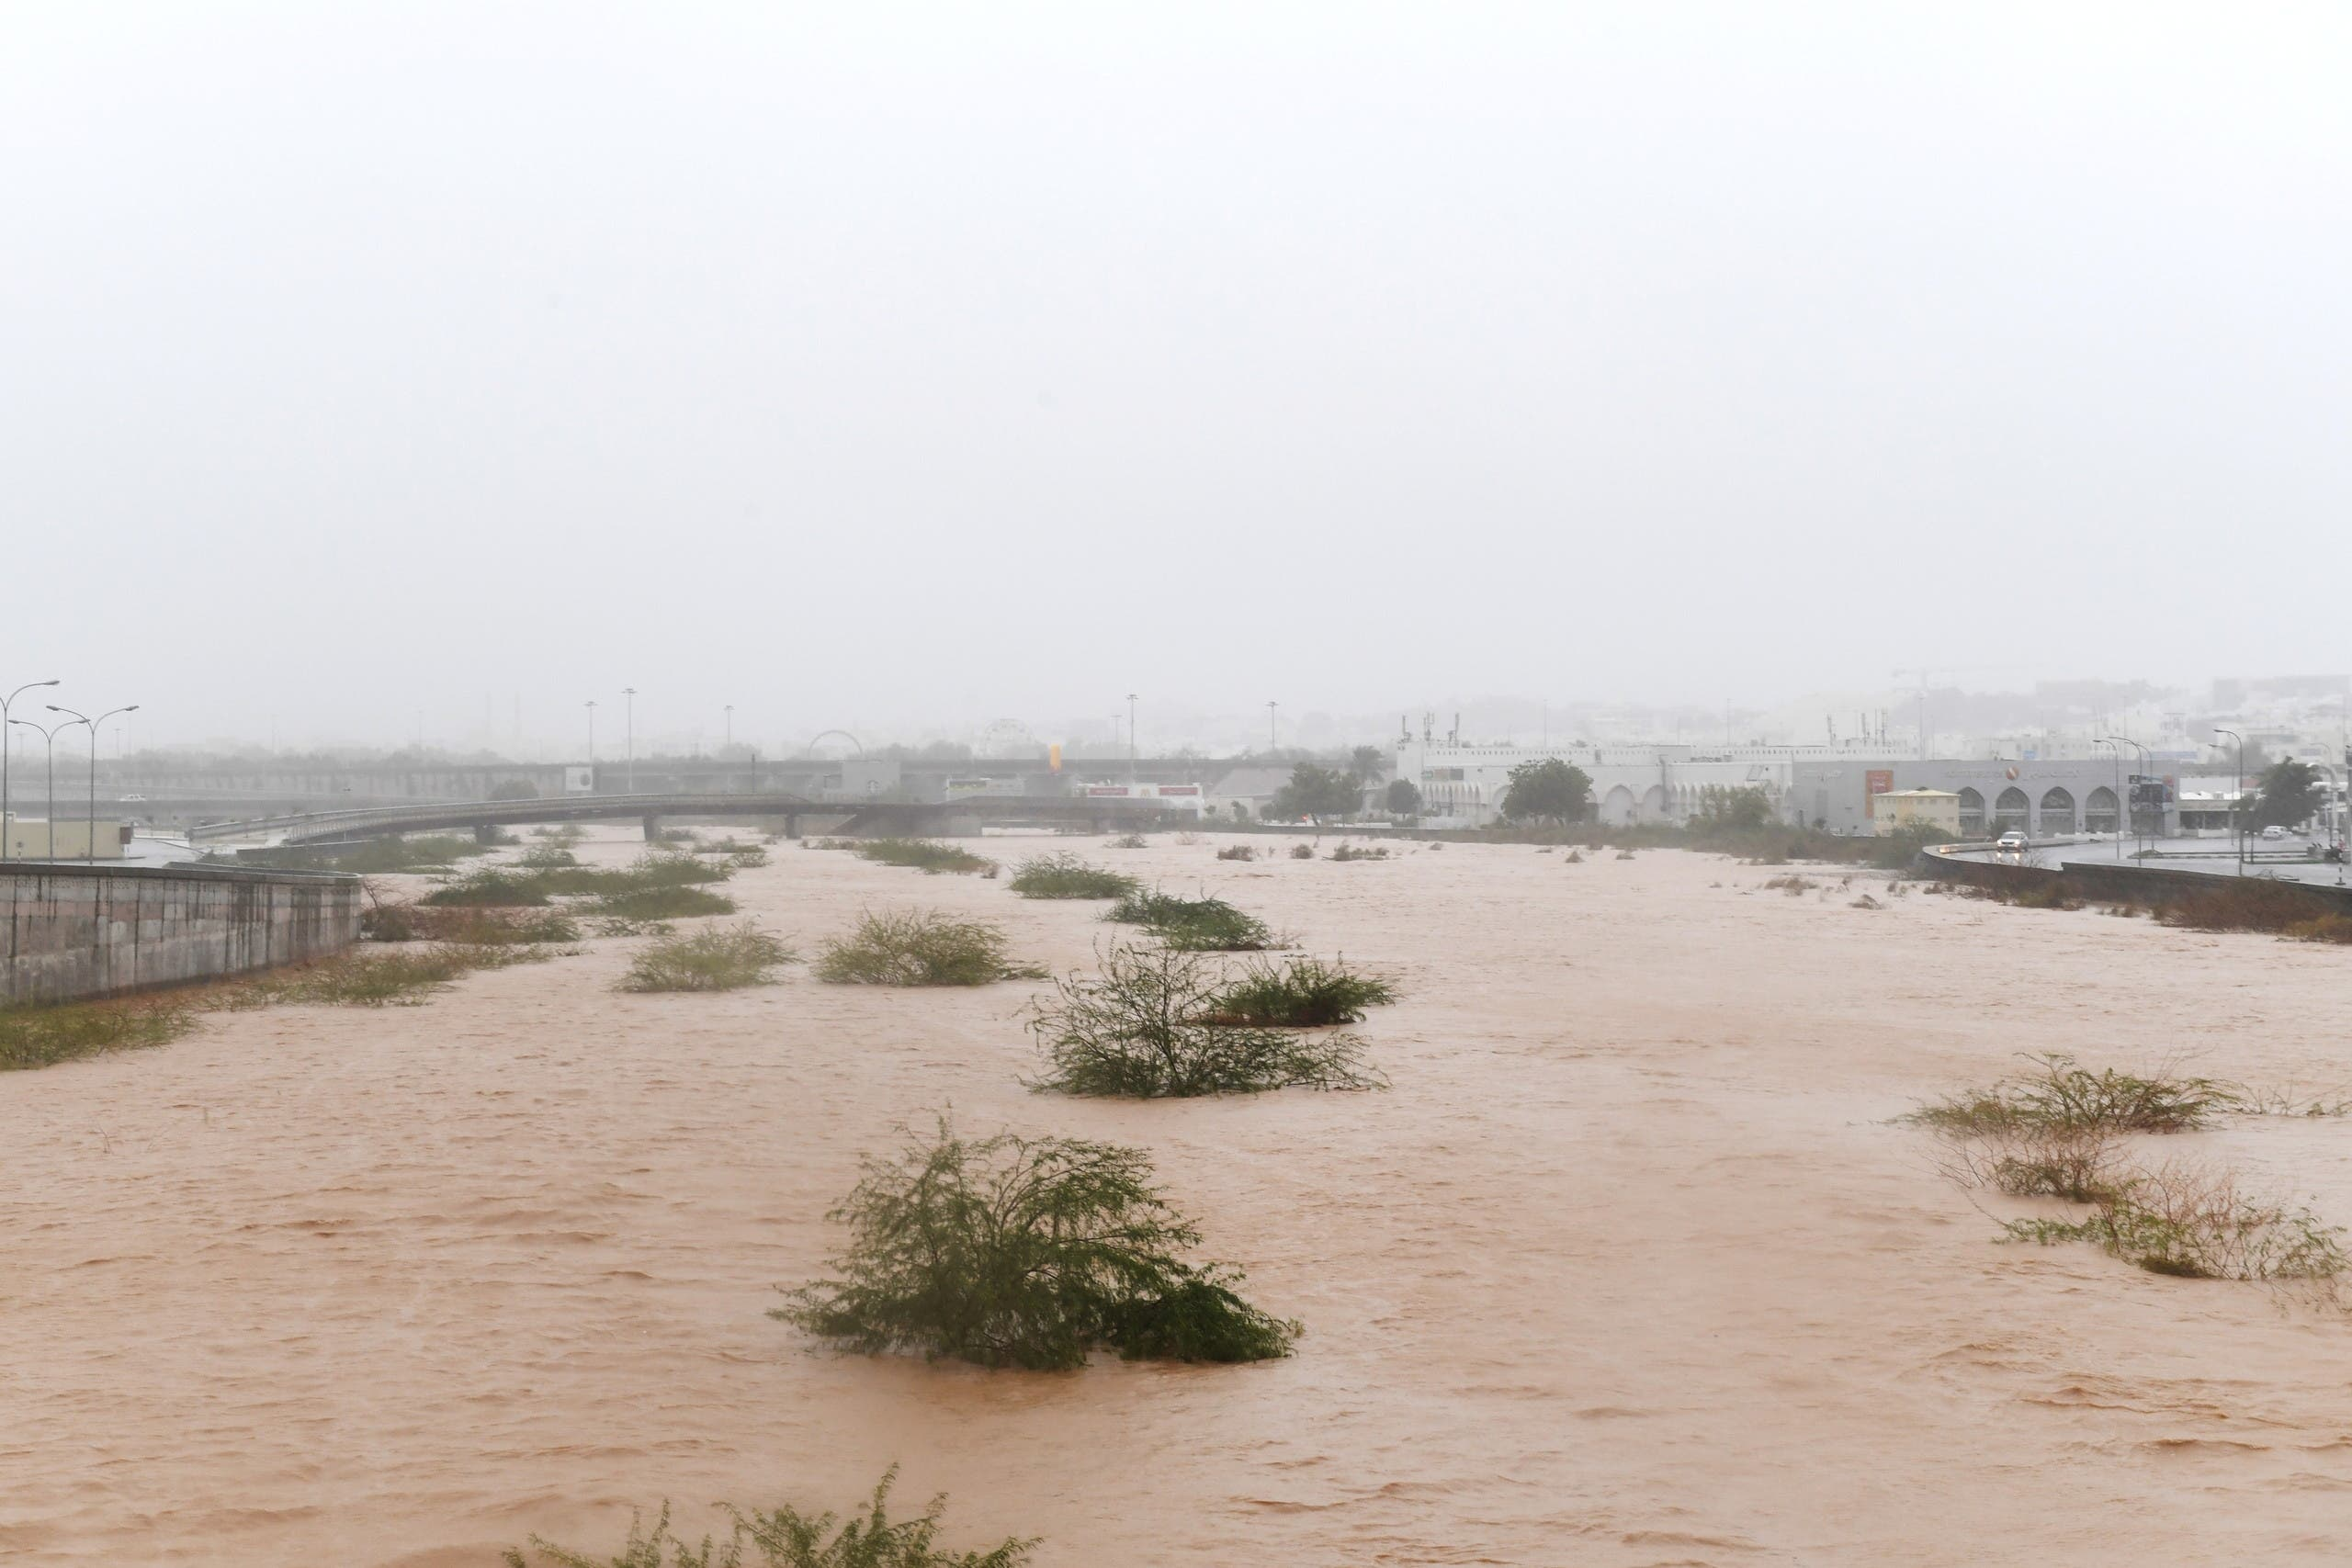 Streets are flooded as Cyclone Shaheen makes the landfall in Muscat, Oman, October 3, 2021. (Reuters)